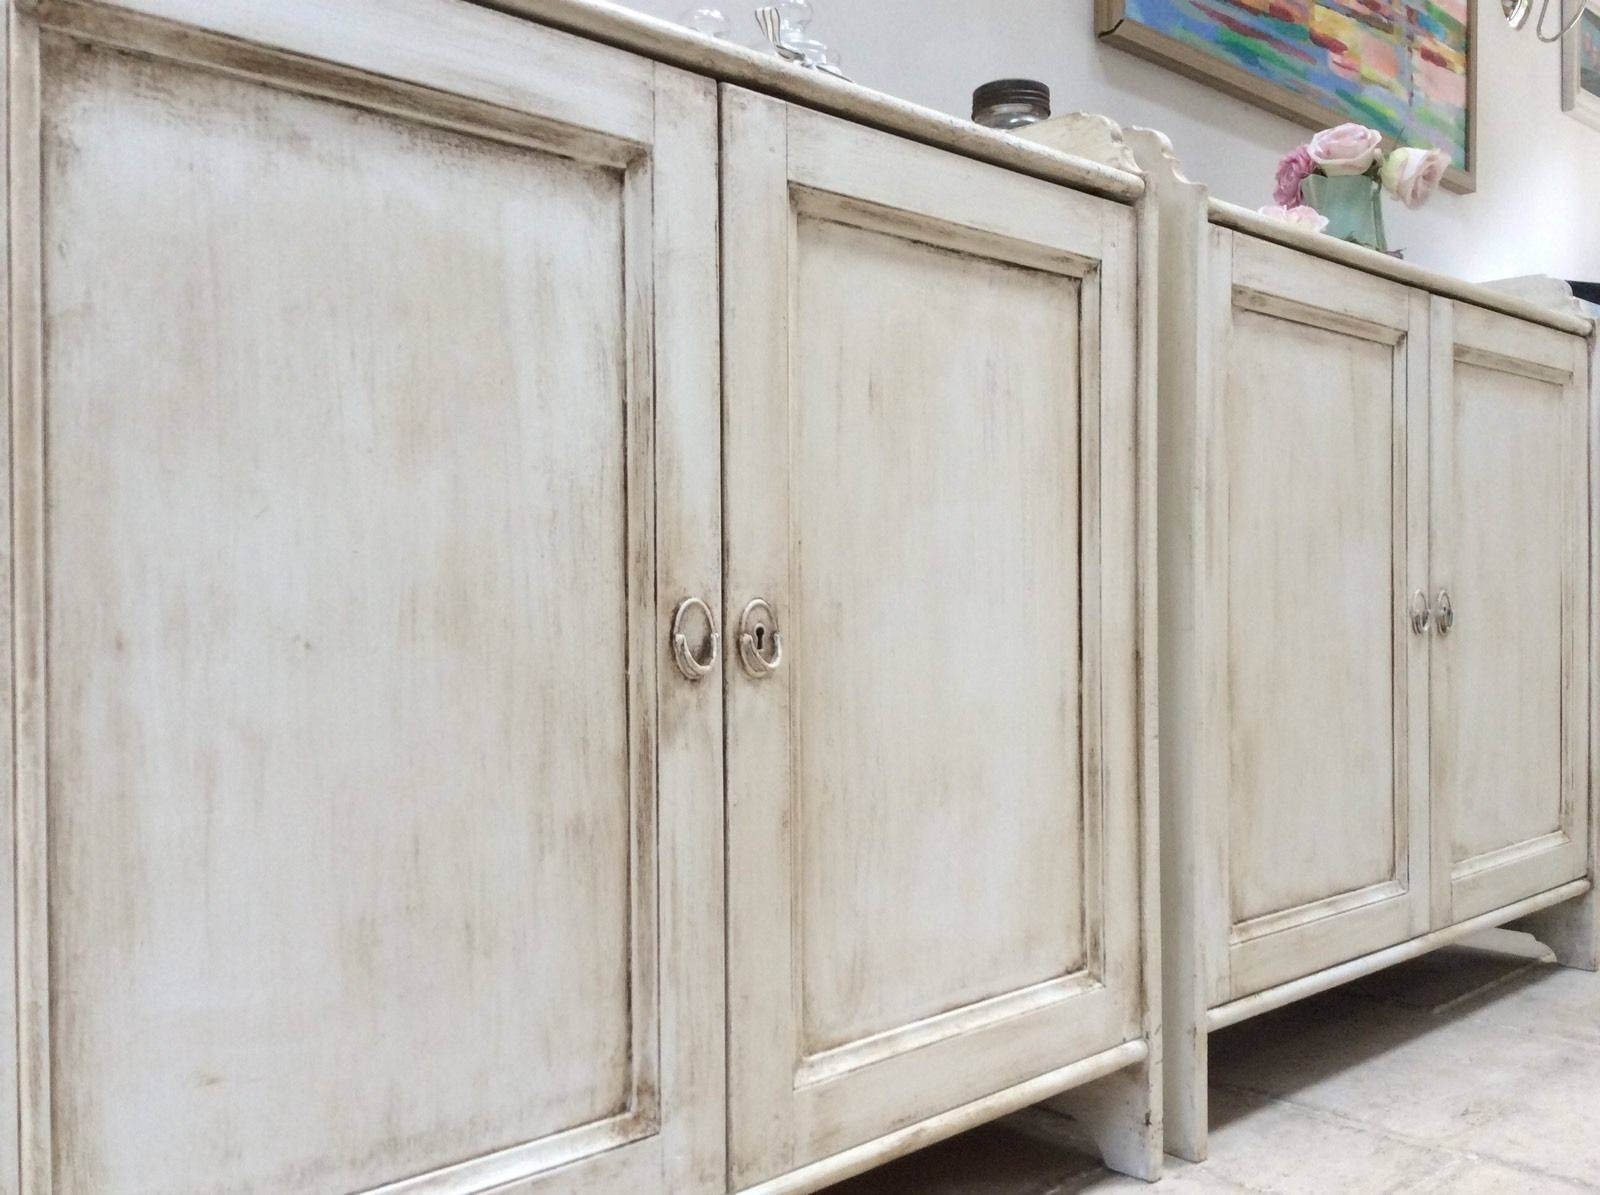 Of Pine Painted Cream Sideboard Freestanding Kitchen Unit Cupboard Pertaining To Free Standing Kitchen Sideboard (View 18 of 20)